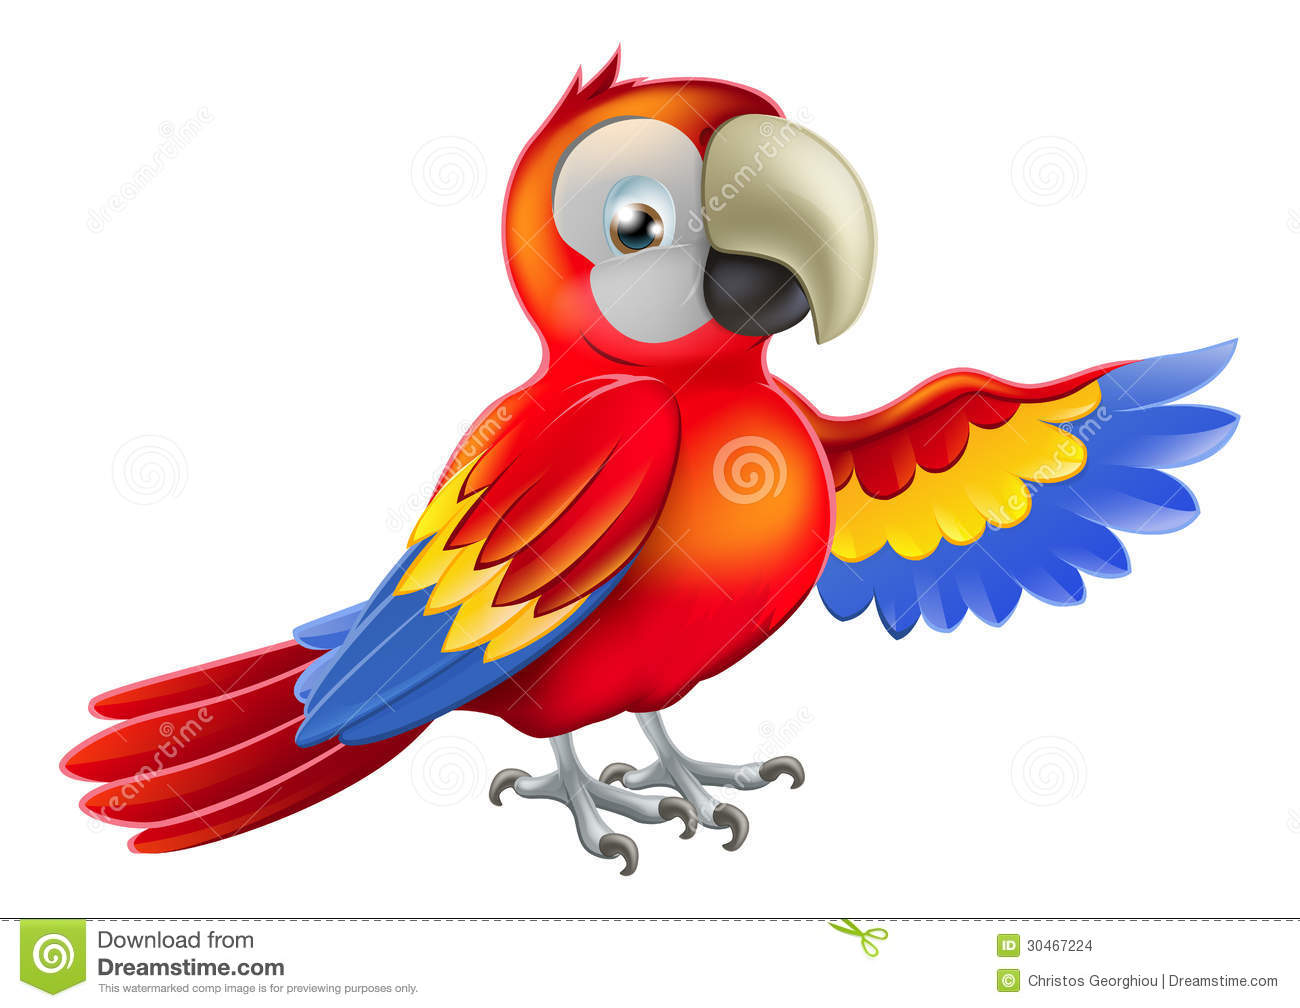 red macaw parrot pointing or showing something with his wing.